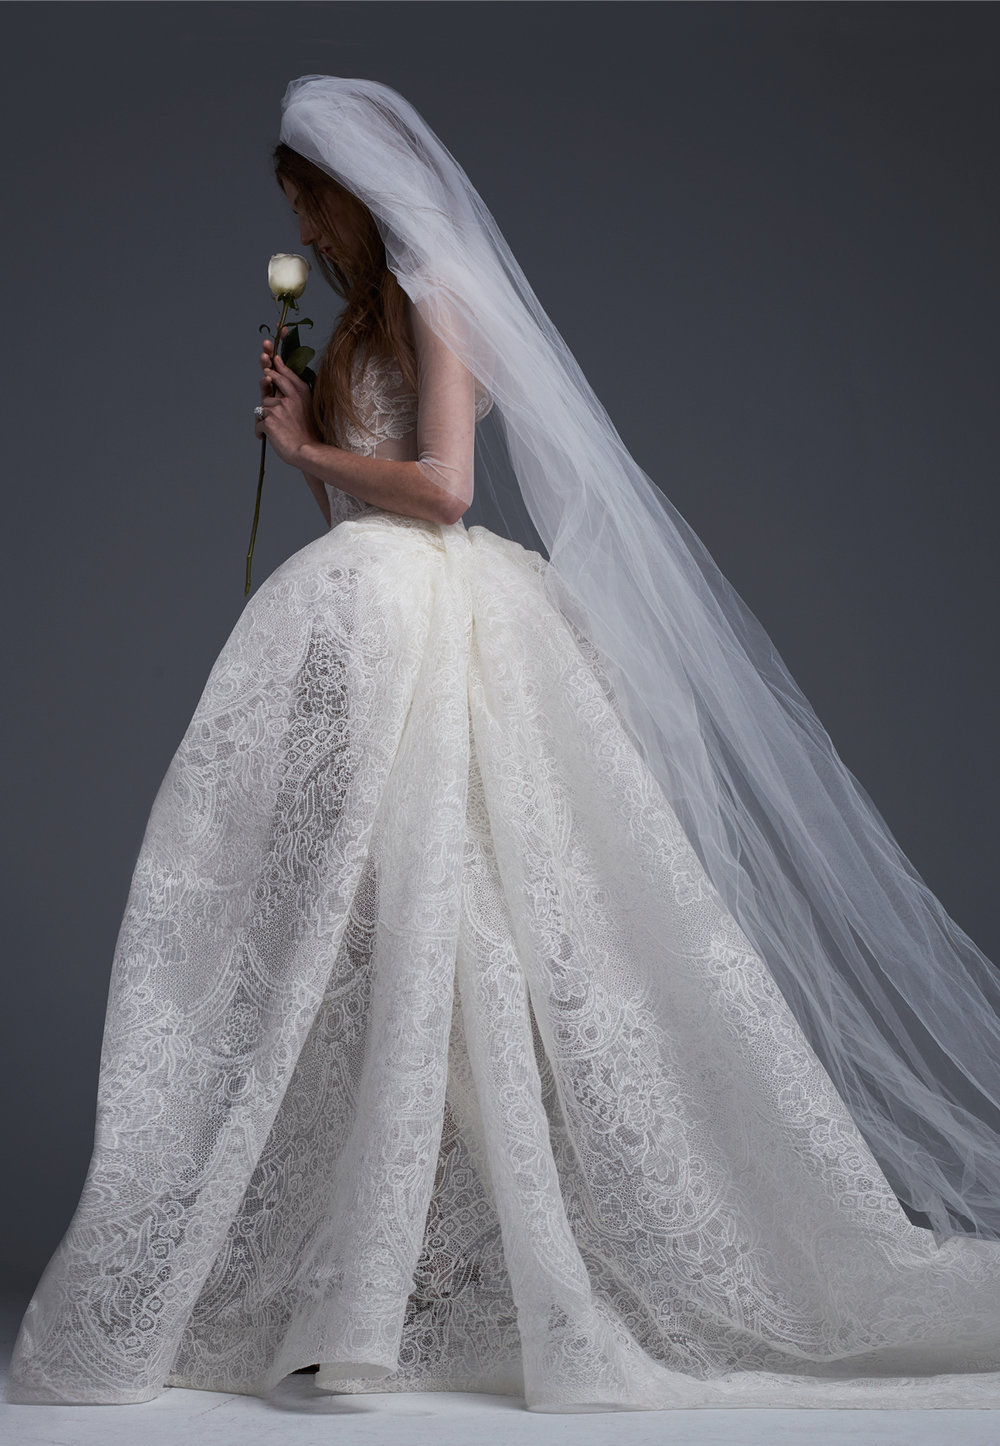 Season: Fall 2017    Gown name: Juliette    Description: A macramé lace ballgown with draped skirt and lace applique and bridal accent buttons.